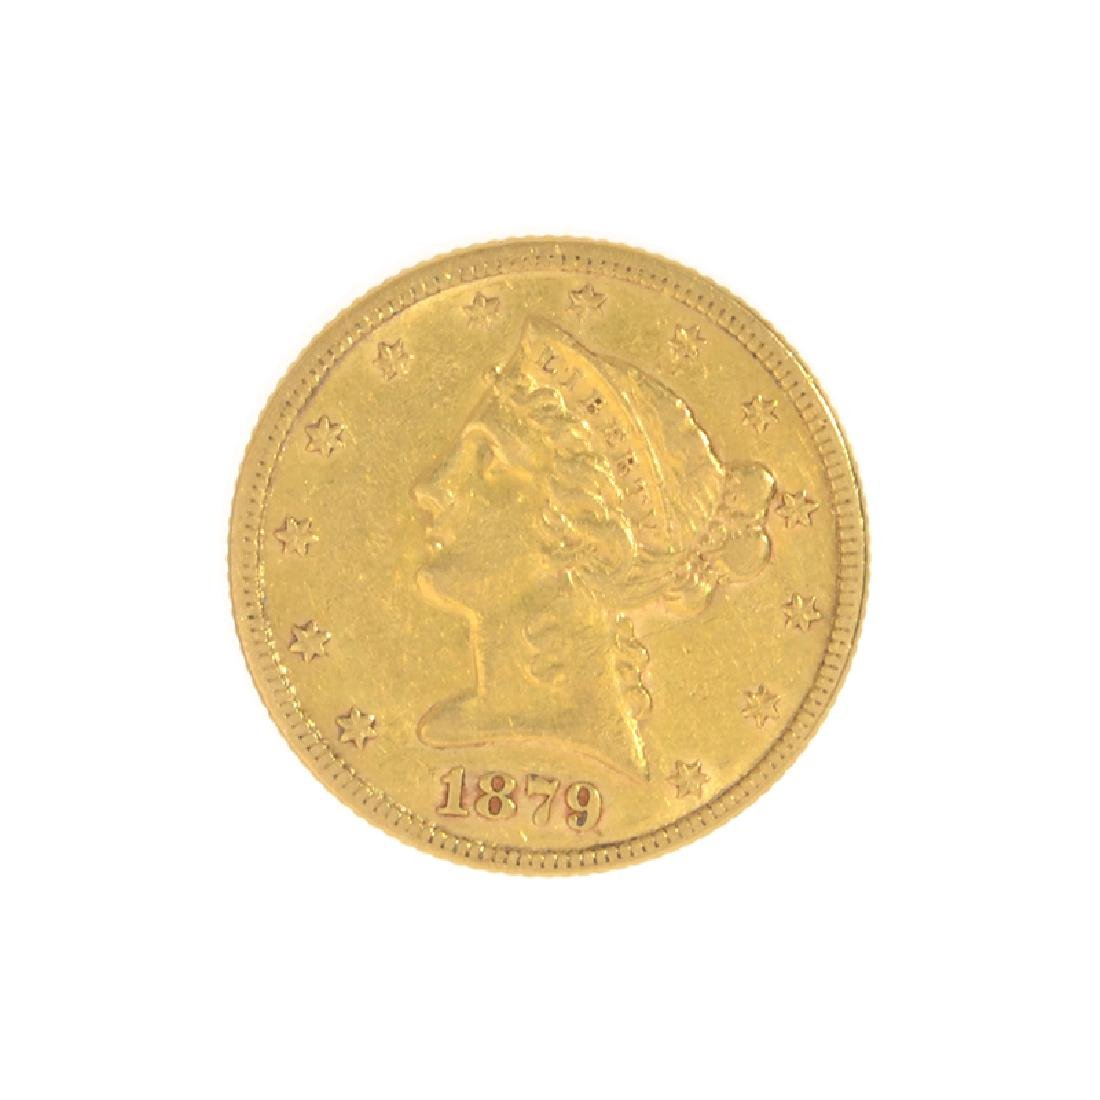 1879 $5 U.S. Liberty Head Gold Coin